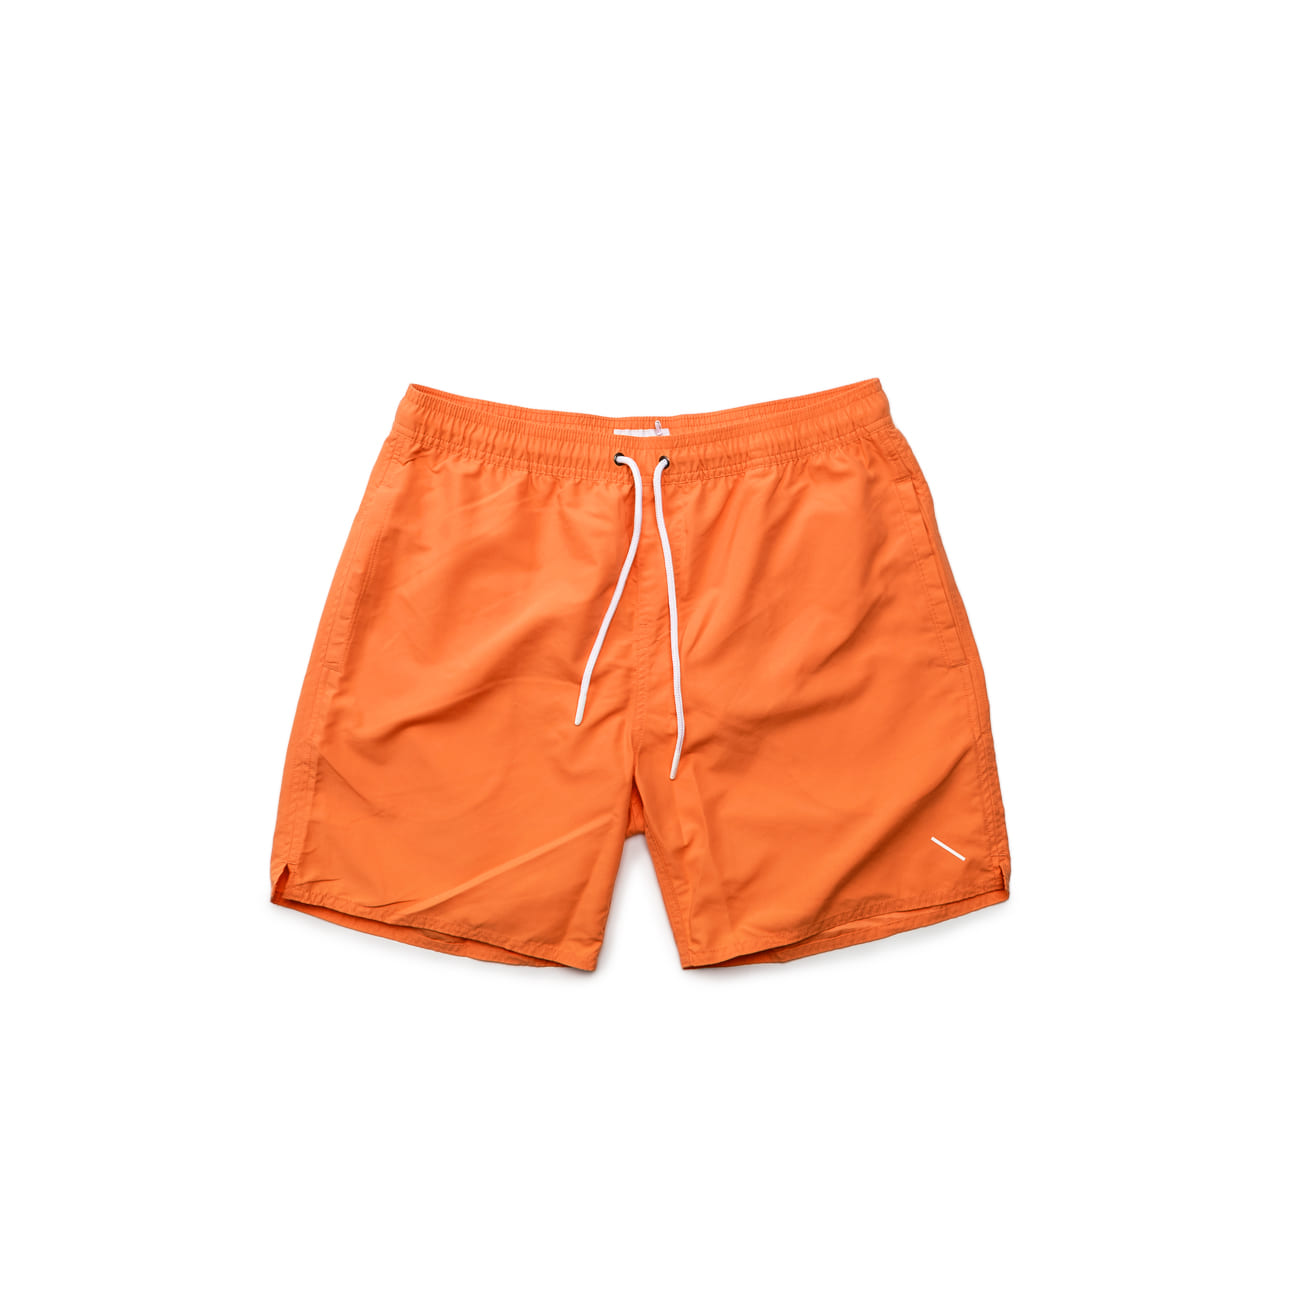 Timothy Swim Short